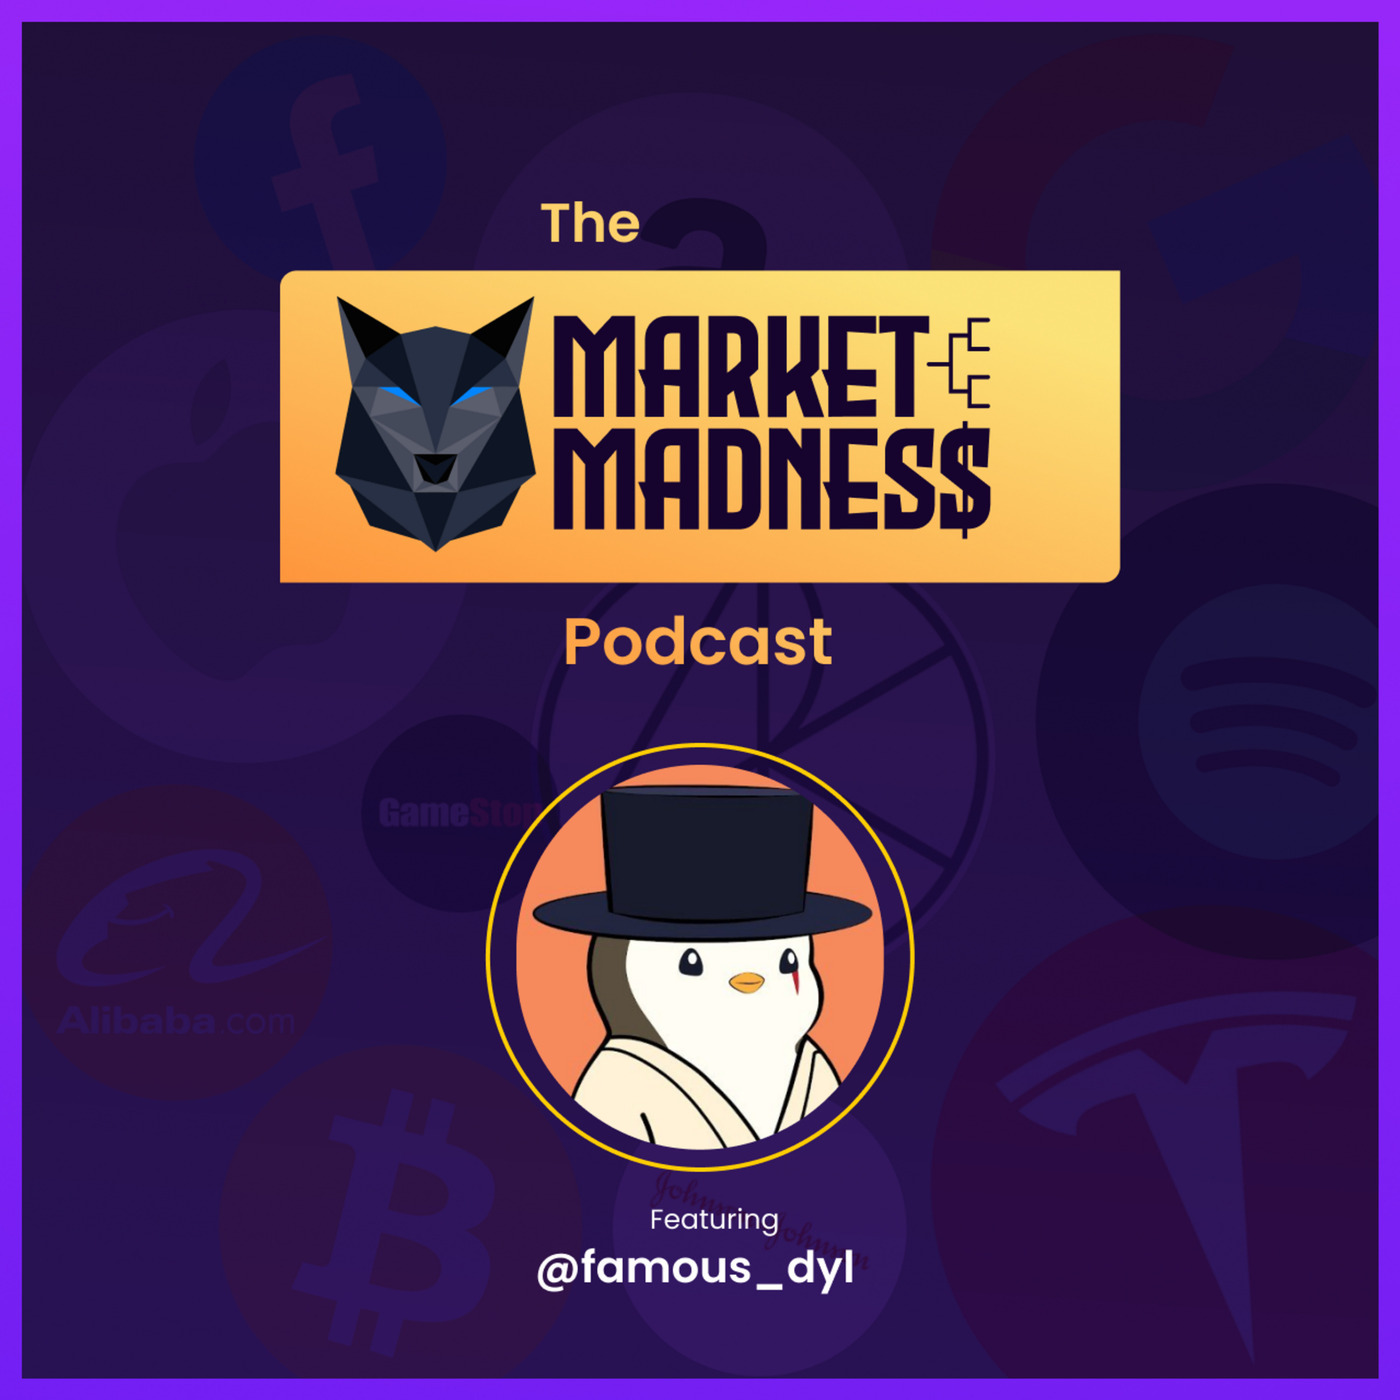 The Market Madness Podcast: Jordan Belfort, Crypto, & NFT's with Dyl